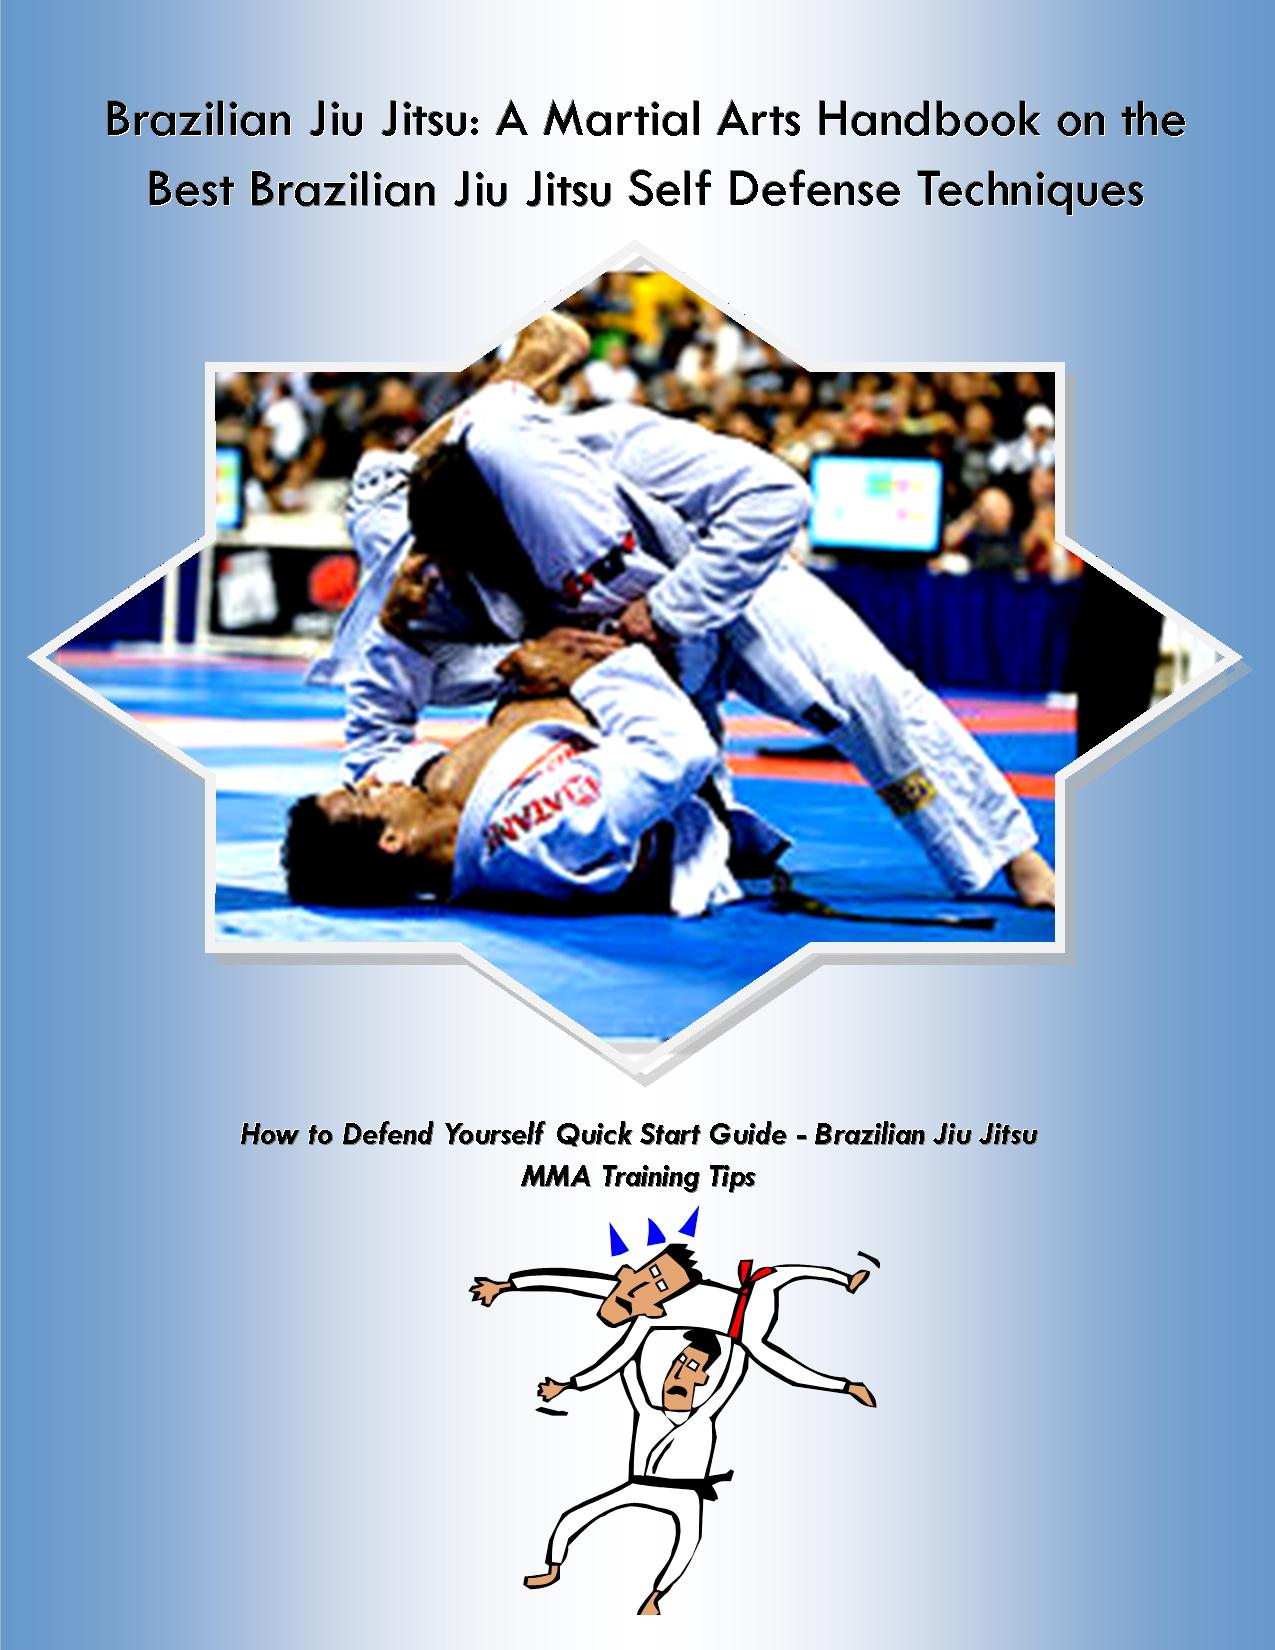 Brazilian Jiu Jitsu: A Martial Arts Handbook on the Best Brazilian Jiu Jitsu Self Defense Techniques